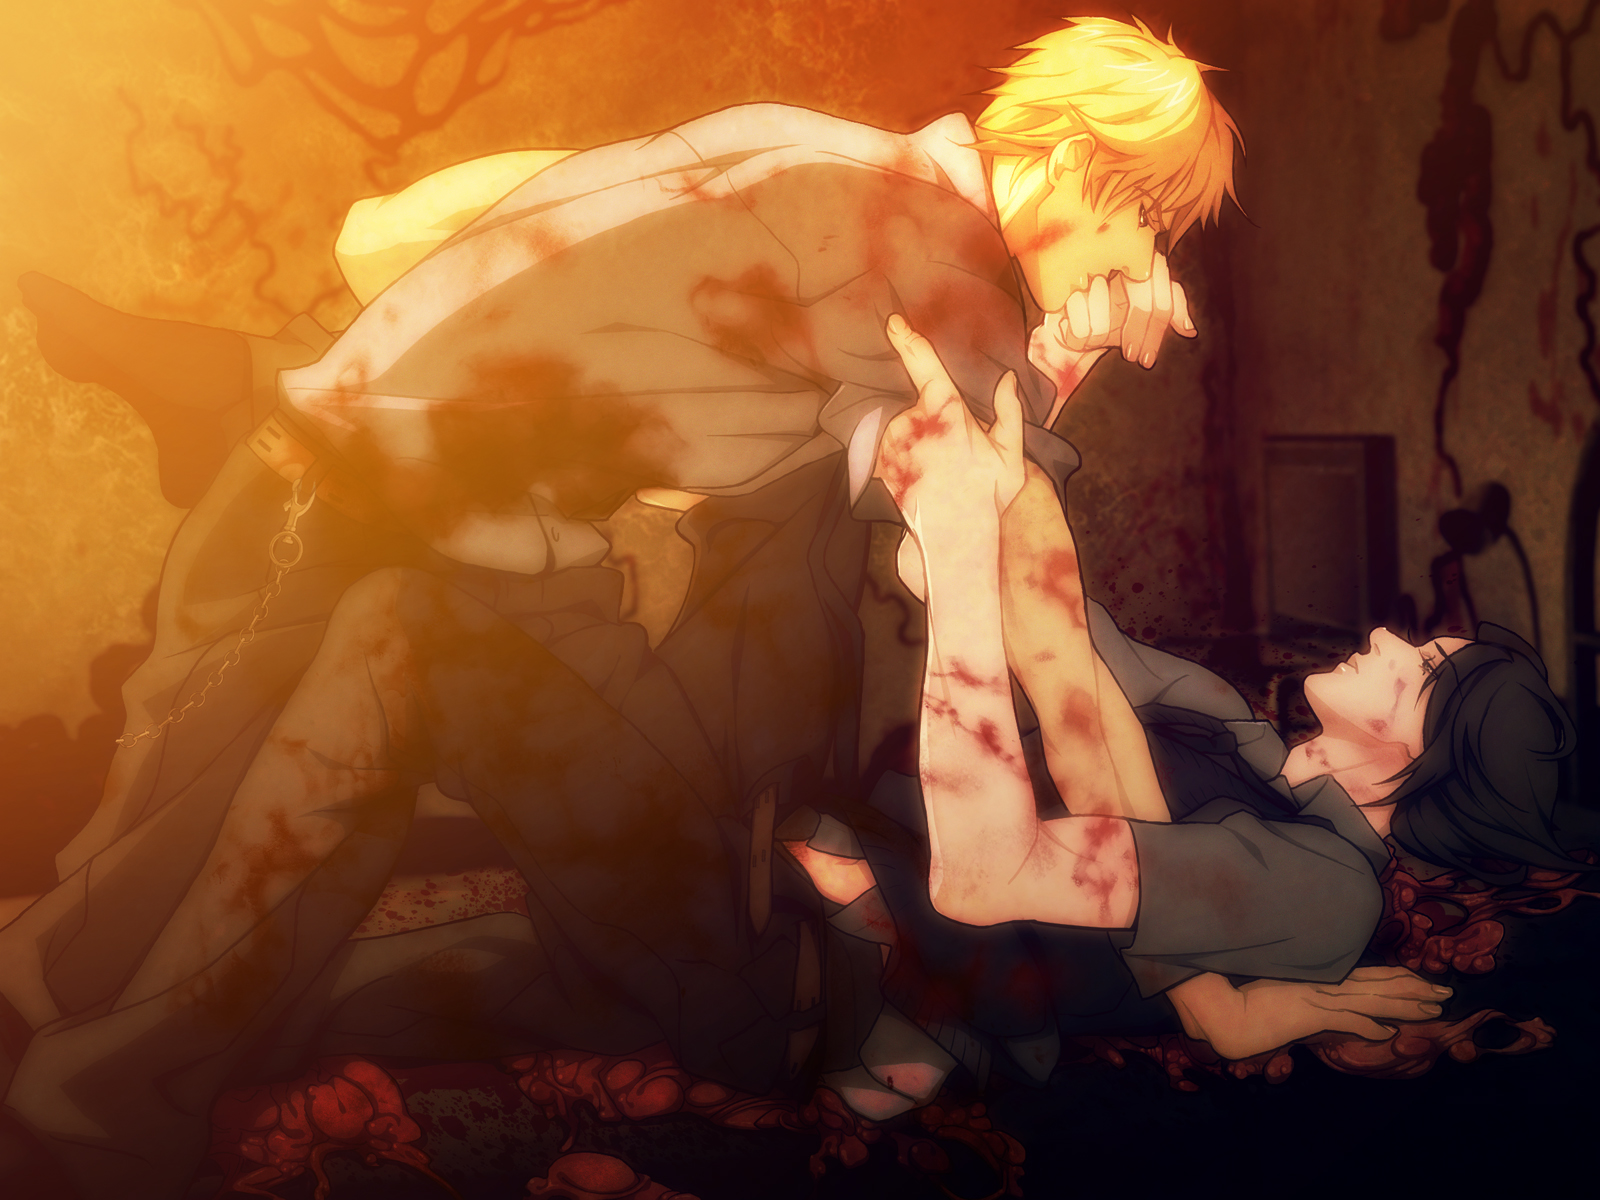 L and Light kissing  Death Note fanart on yaoionlinecom